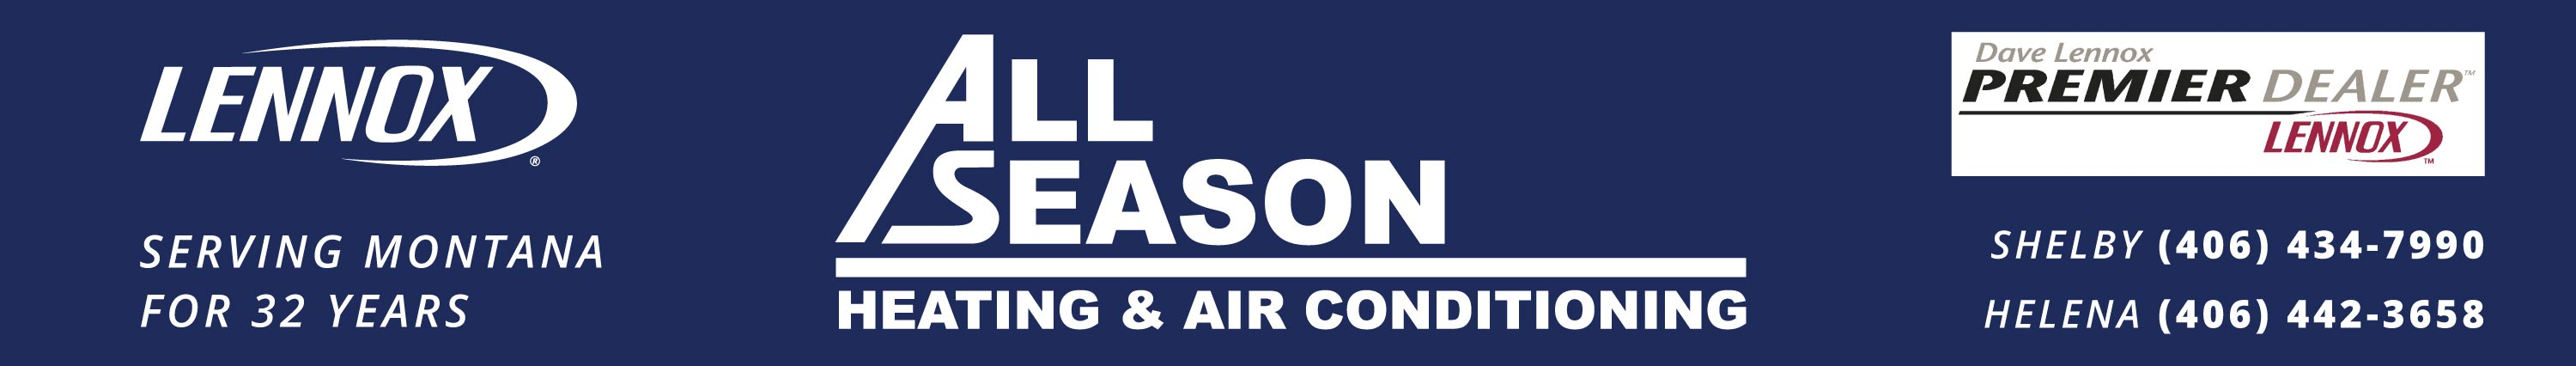 Four seasons heating and air conditioning chicago - All Season Heating Cooling